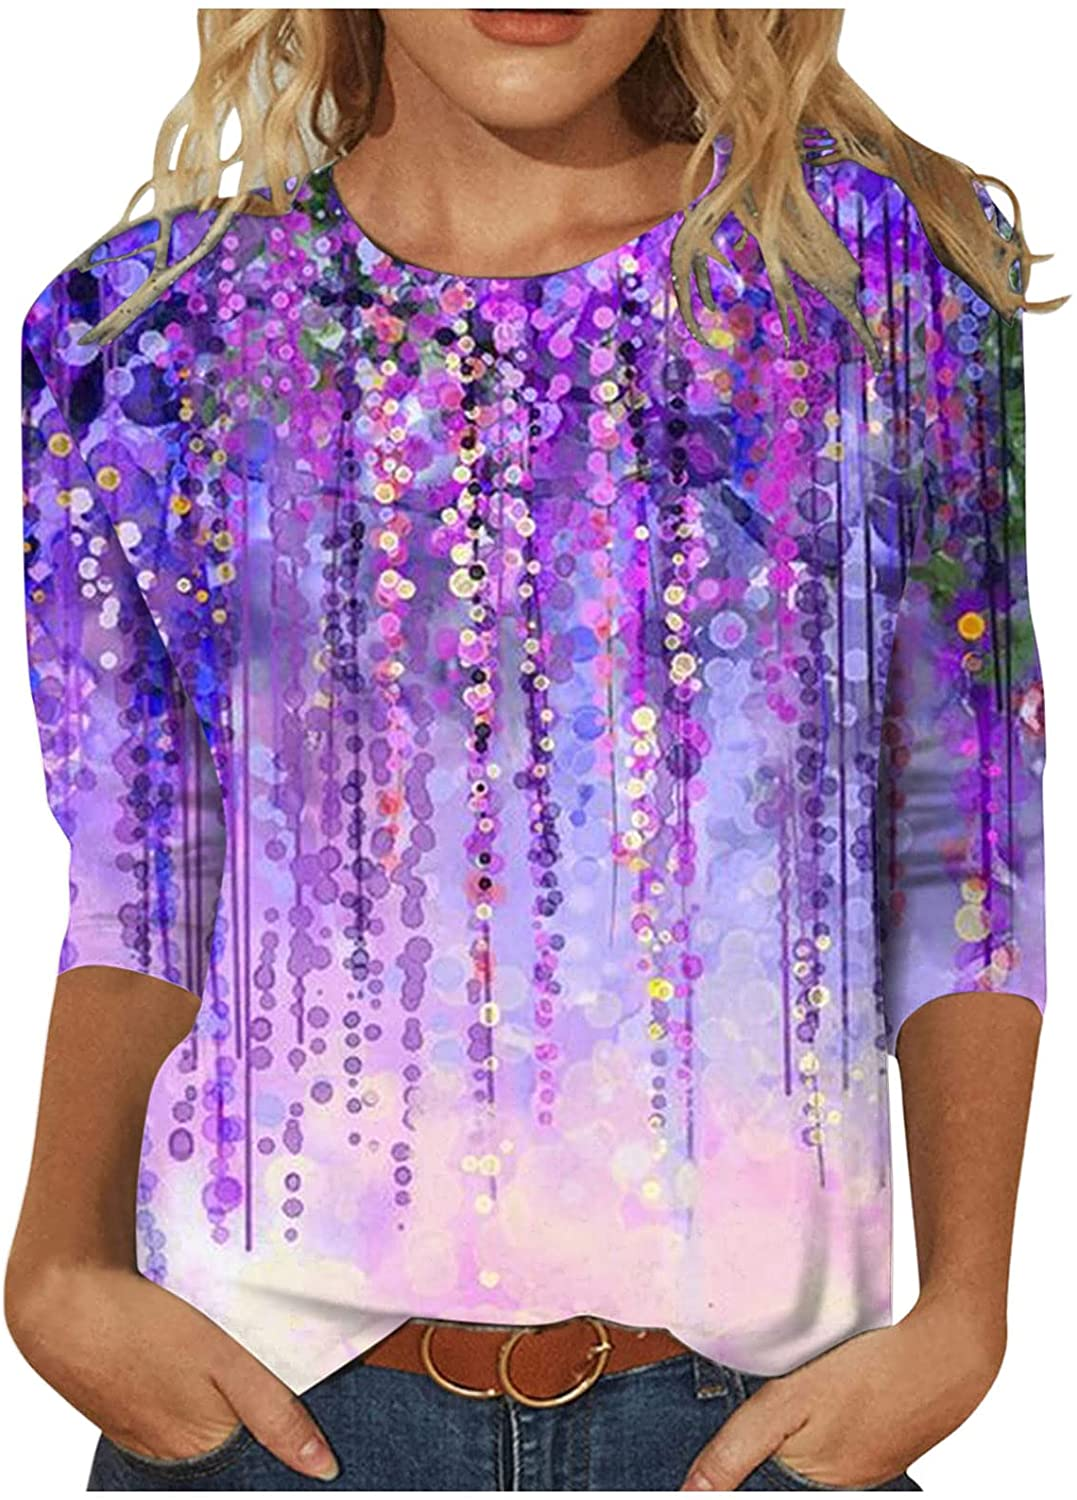 UBST Women's Round Neck Tops Loose Fit,2021 Fall Fashion Casual Comfy T-Shirt Printed Midi Sleeves Tunic Blouses